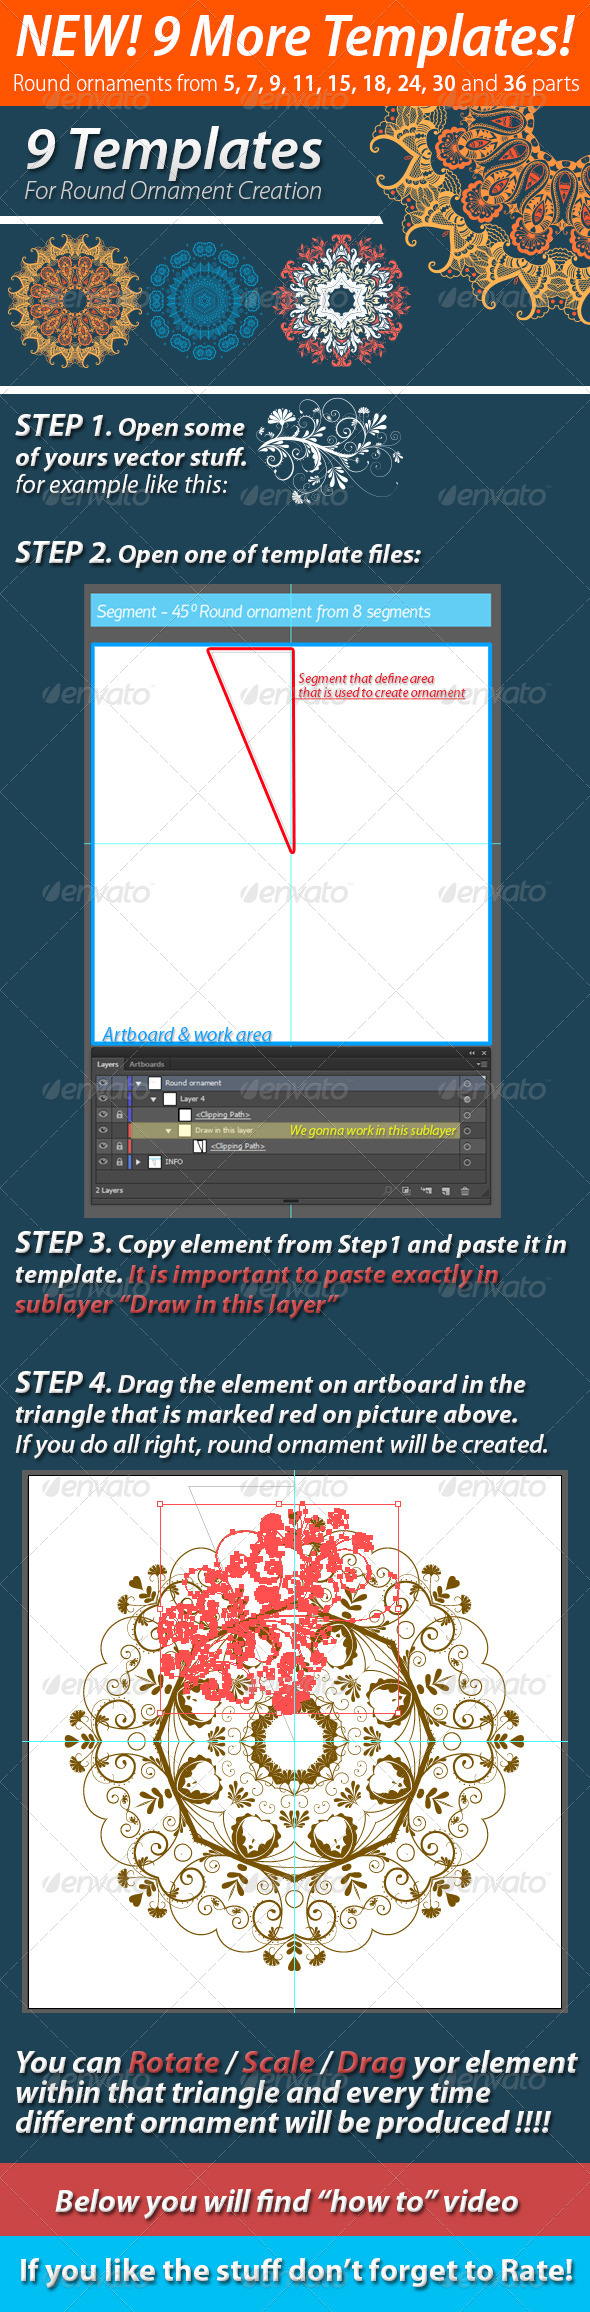 GraphicRiver 9 Templates For Round Ornament Creation 7193368